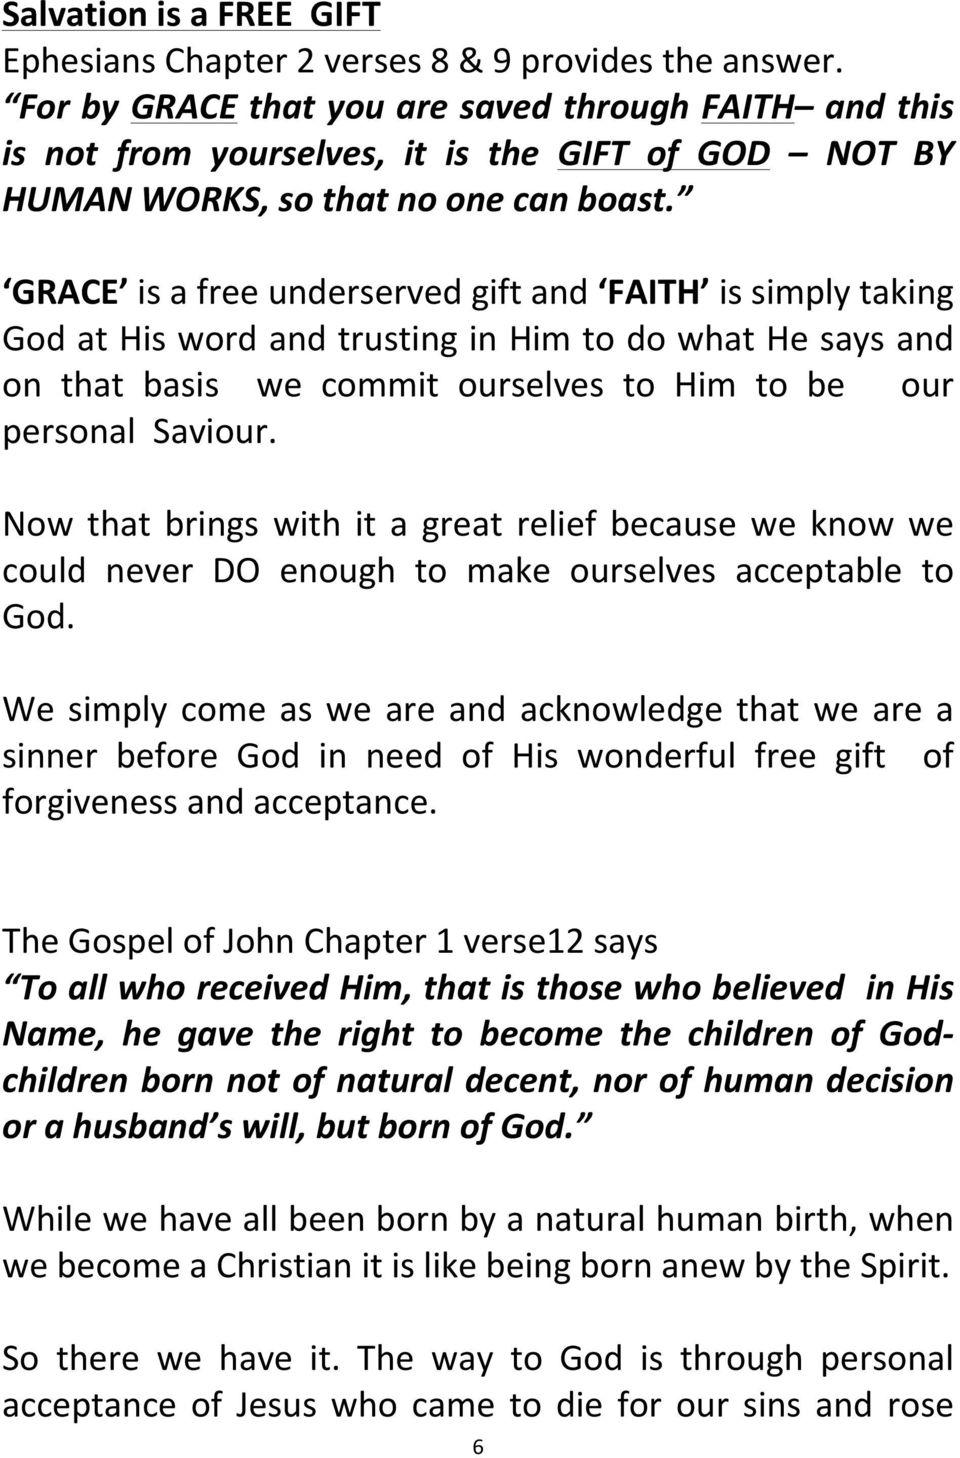 GRACE is a free underserved gift and FAITH is simply taking God at His word and trusting in Him to do what He says and on that basis we commit ourselves to Him to be our personal Saviour.